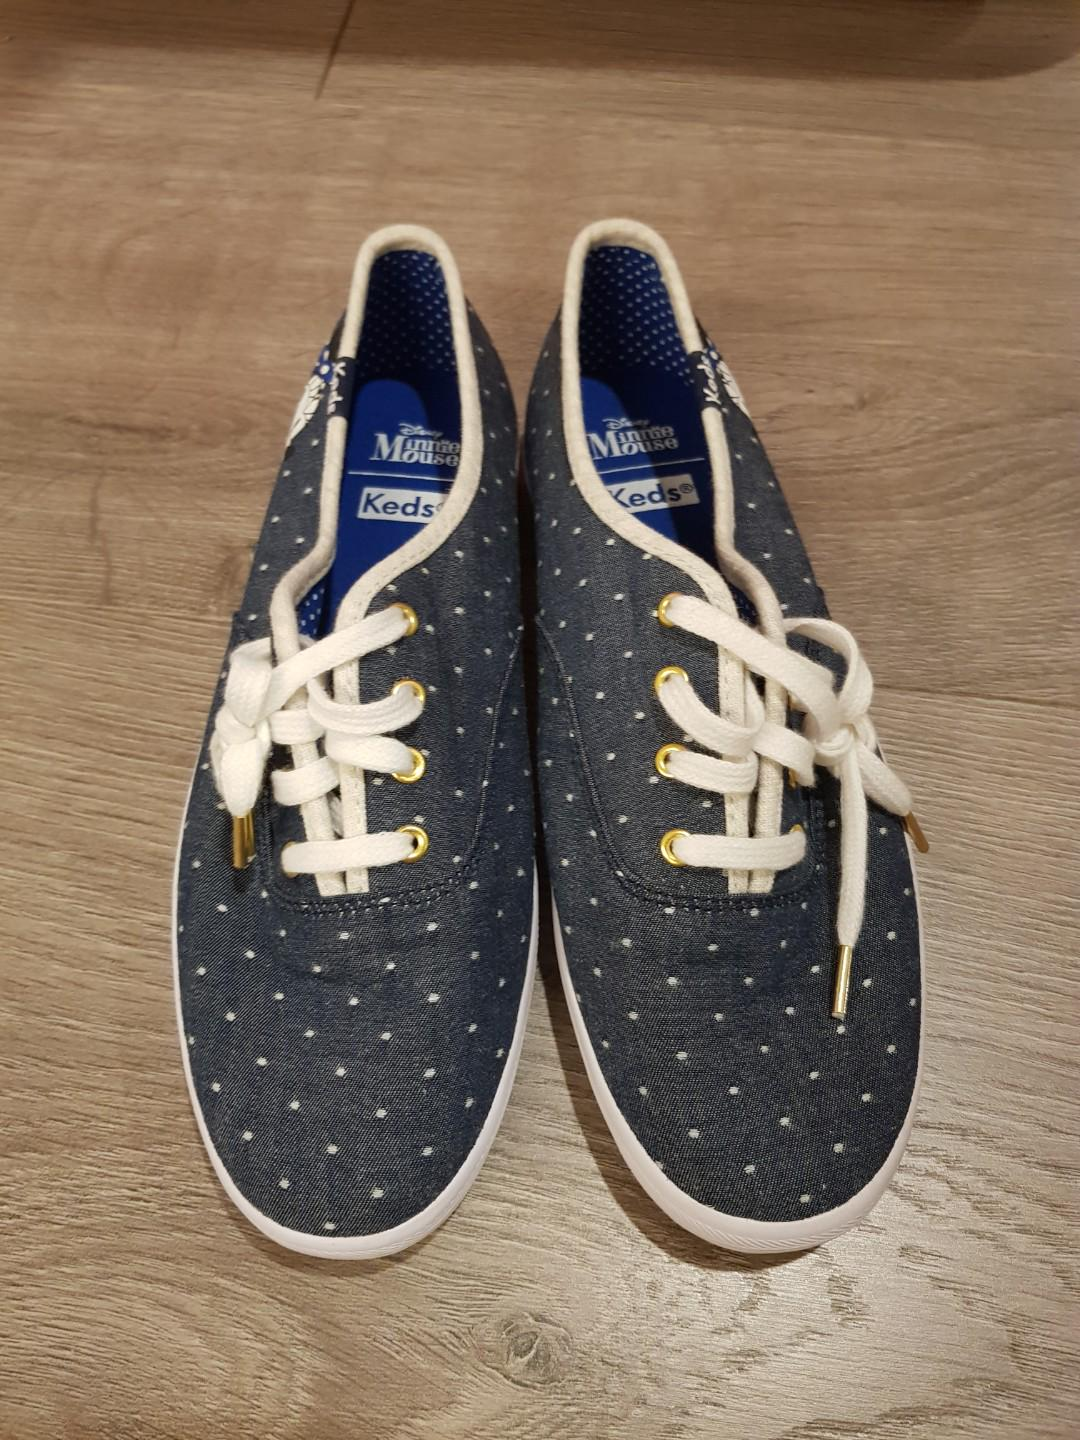 BN Keds Denim Minnie Mouse Sneakers